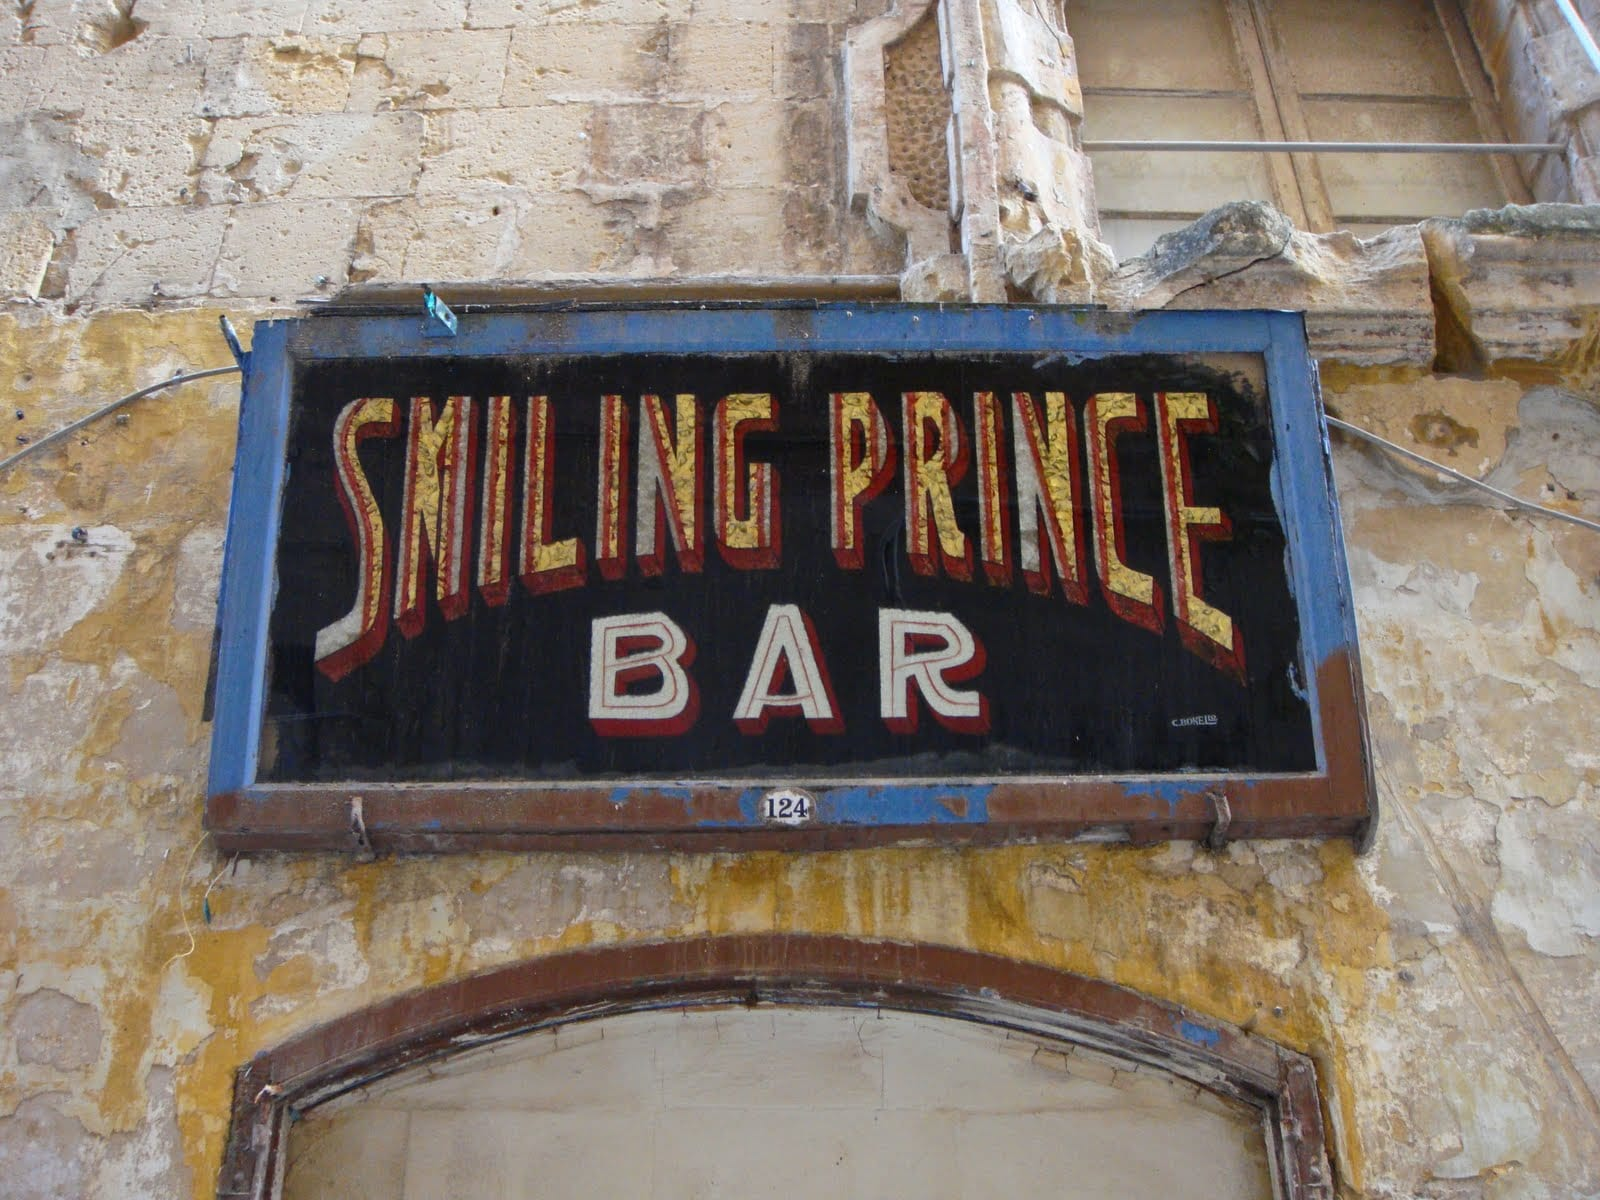 maltadiary1-valletta-old-shops-smilingsprince-bar